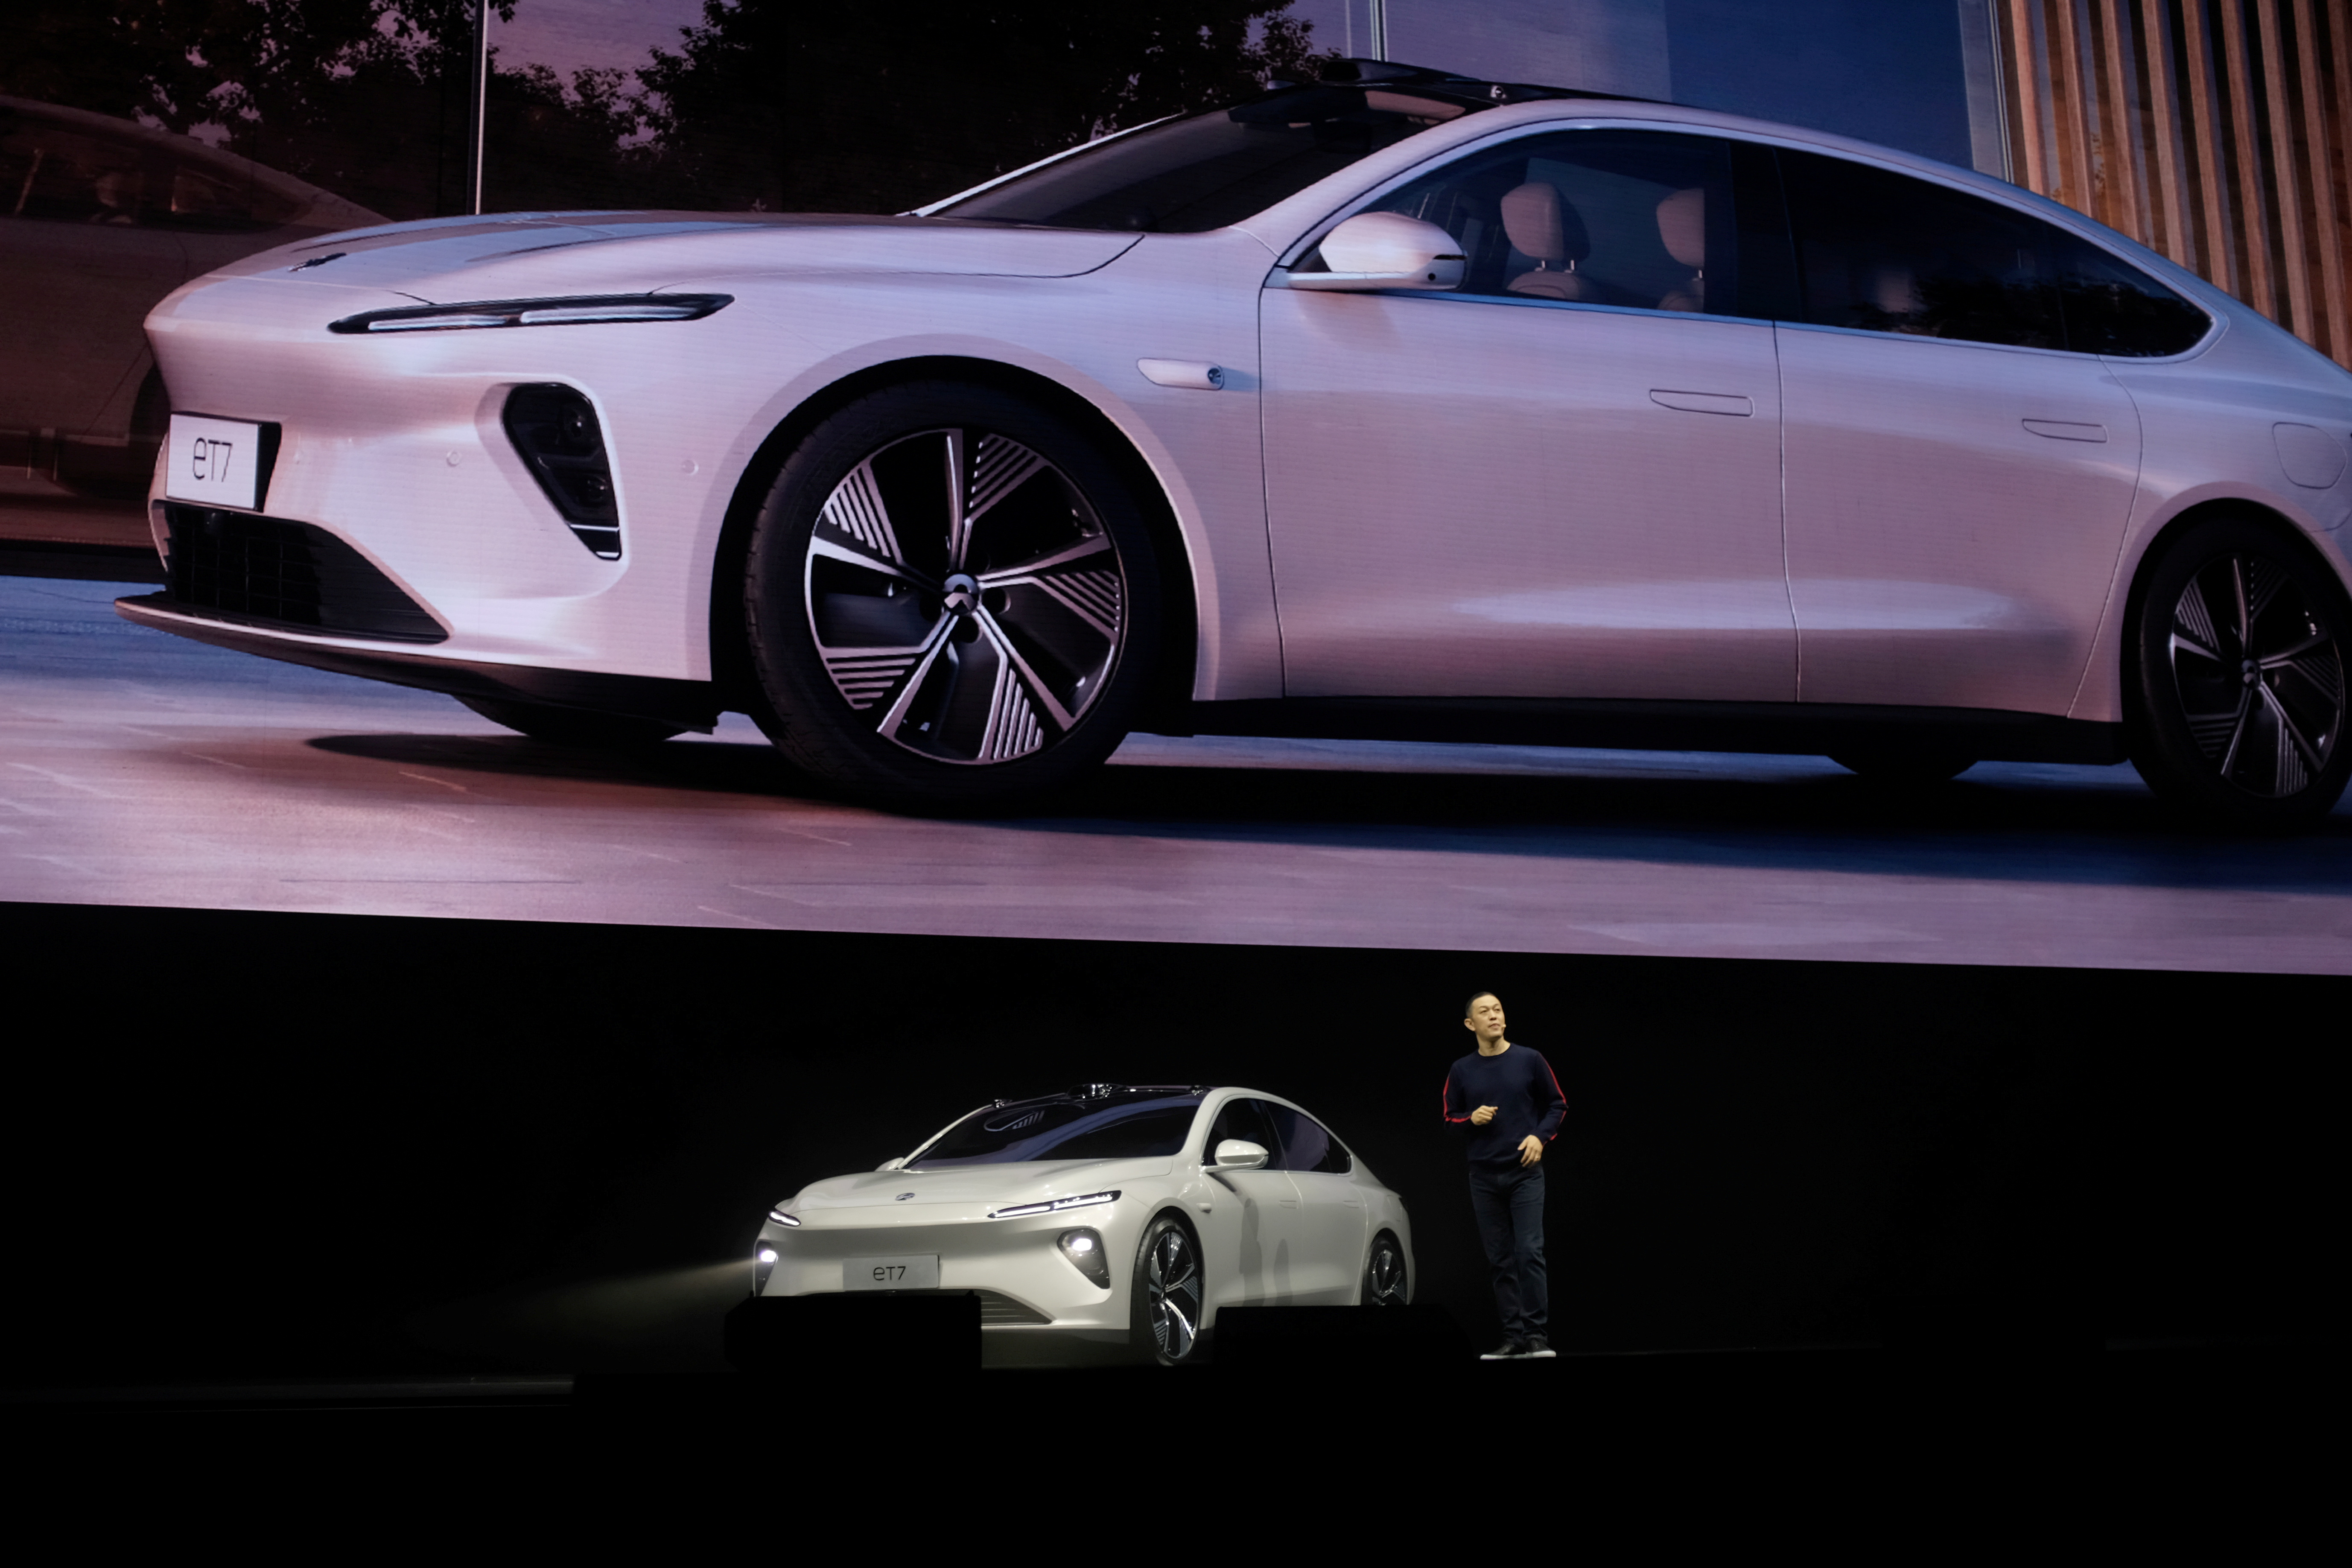 William Li, founder and chief executive officer (CEO) of Chinese electric vehicle maker Nio Inc, unveils Nio's ET7 sedan at a product launch event in Chengdu, Sichuan province, China, January 9, 2021. REUTERS/Yilei Sun/File Photo